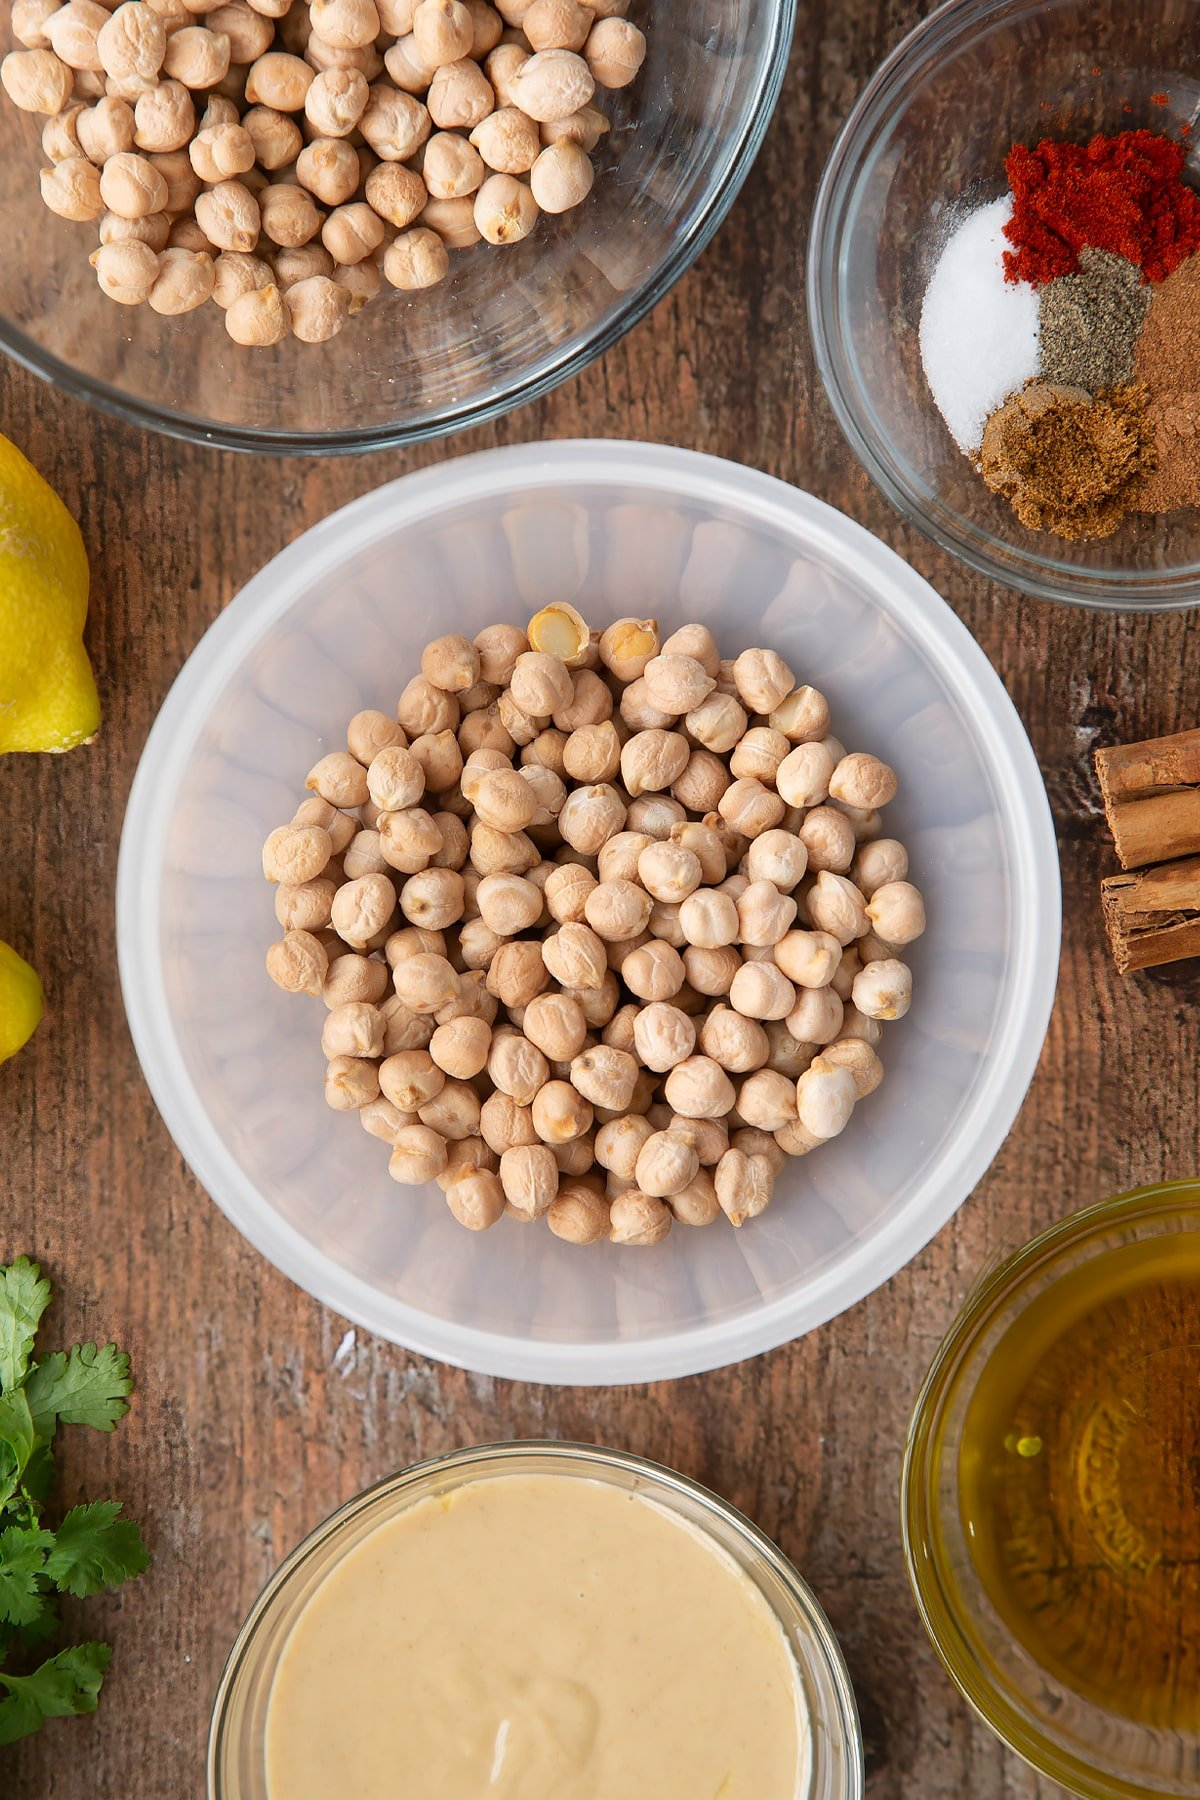 Dried chickpeas in a plastic bowl. Ingredients to make cinnamon hummus surround the bowl.